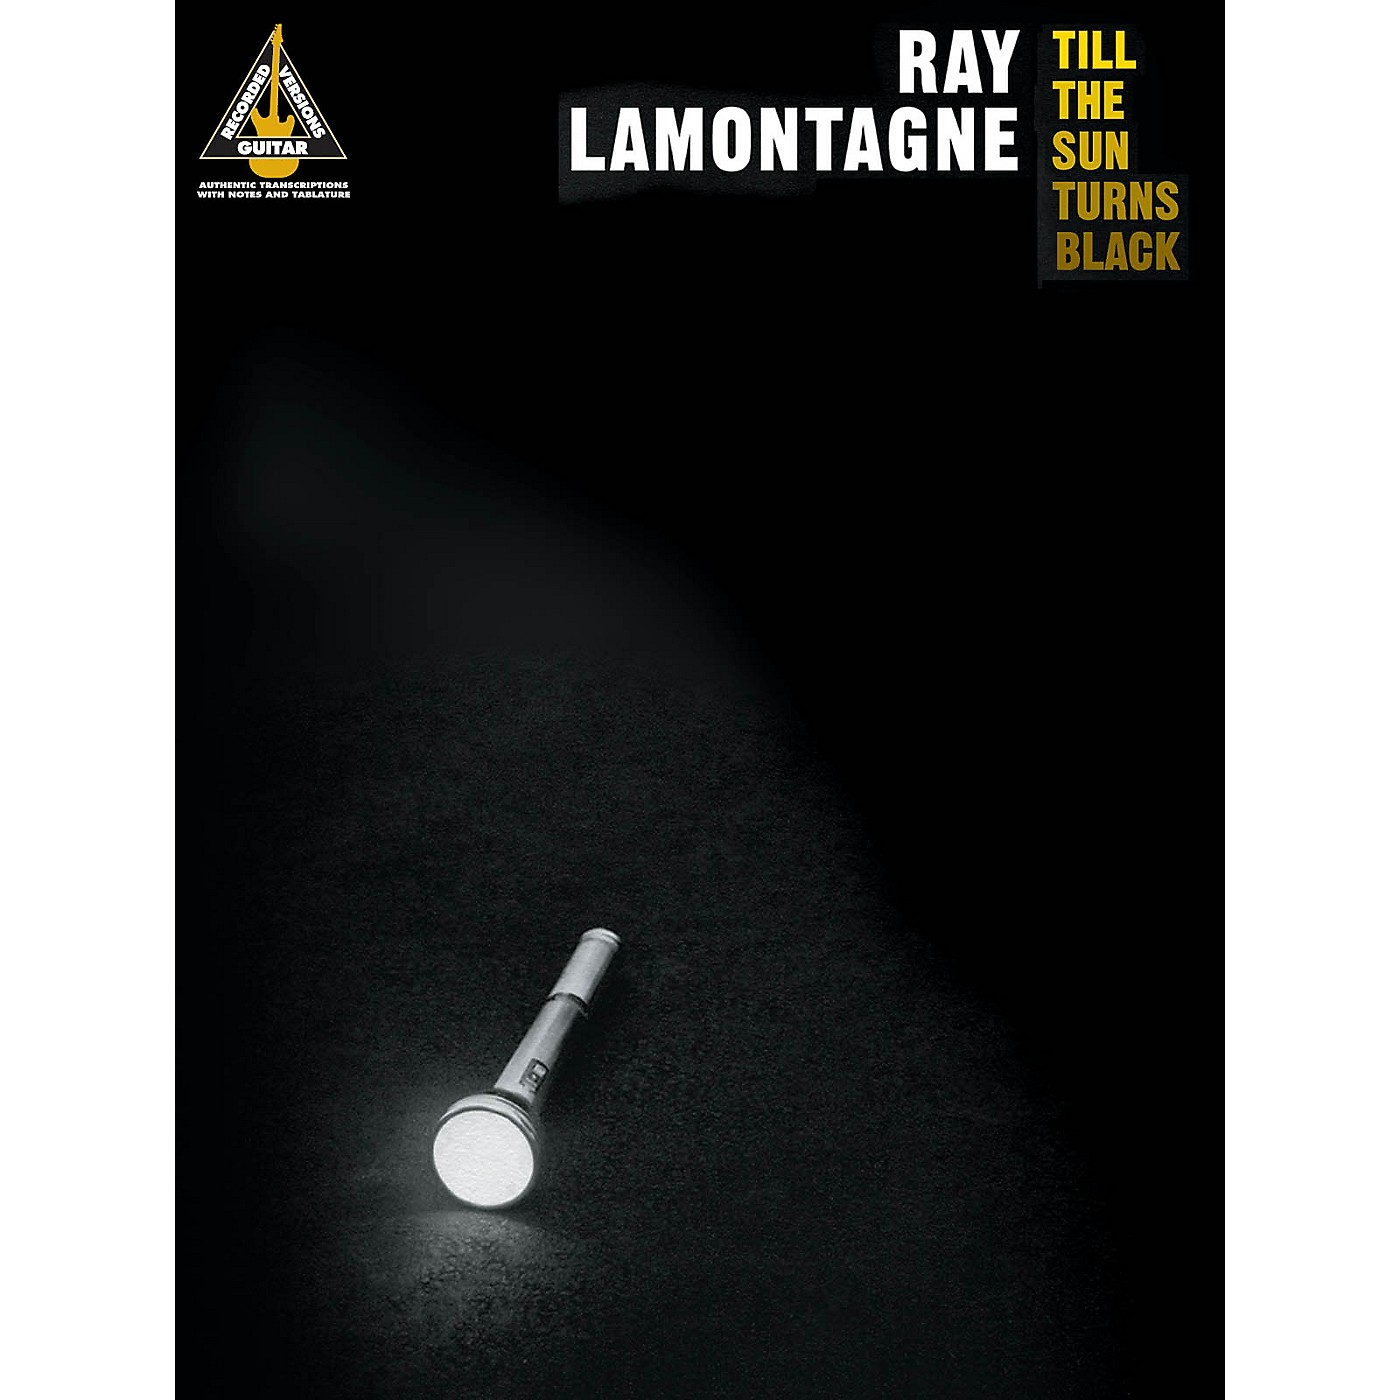 Hal Leonard Ray LaMontagne - Till the Sun Turns Black Guitar Recorded Version Series Softcover by Ray LaMontagne thumbnail